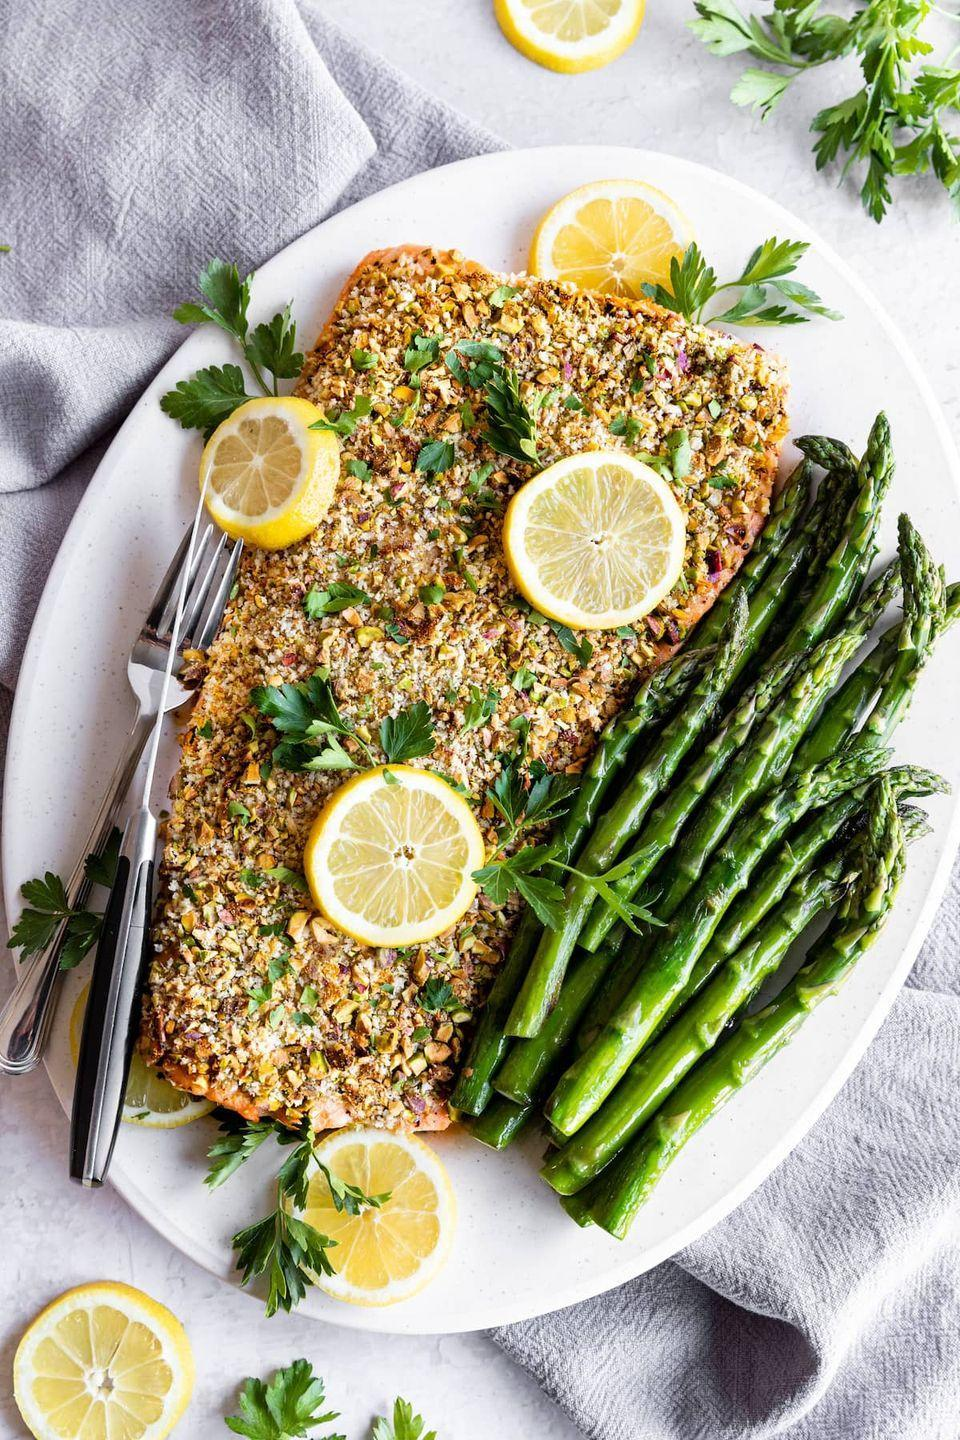 """<p>Top salmon with a crunchy mixture of panko, pistachios, and parmesan before baking to take it to the next level. This restaurant-worthy meal looks super impressive but it takes just 20 minutes to make. </p><p><strong>Get the recipe at <a href=""""https://www.twopeasandtheirpod.com/pistachio-crusted-baked-salmon/"""" rel=""""nofollow noopener"""" target=""""_blank"""" data-ylk=""""slk:Two Peas and Their Pod"""" class=""""link rapid-noclick-resp"""">Two Peas and Their Pod</a>.</strong> </p>"""